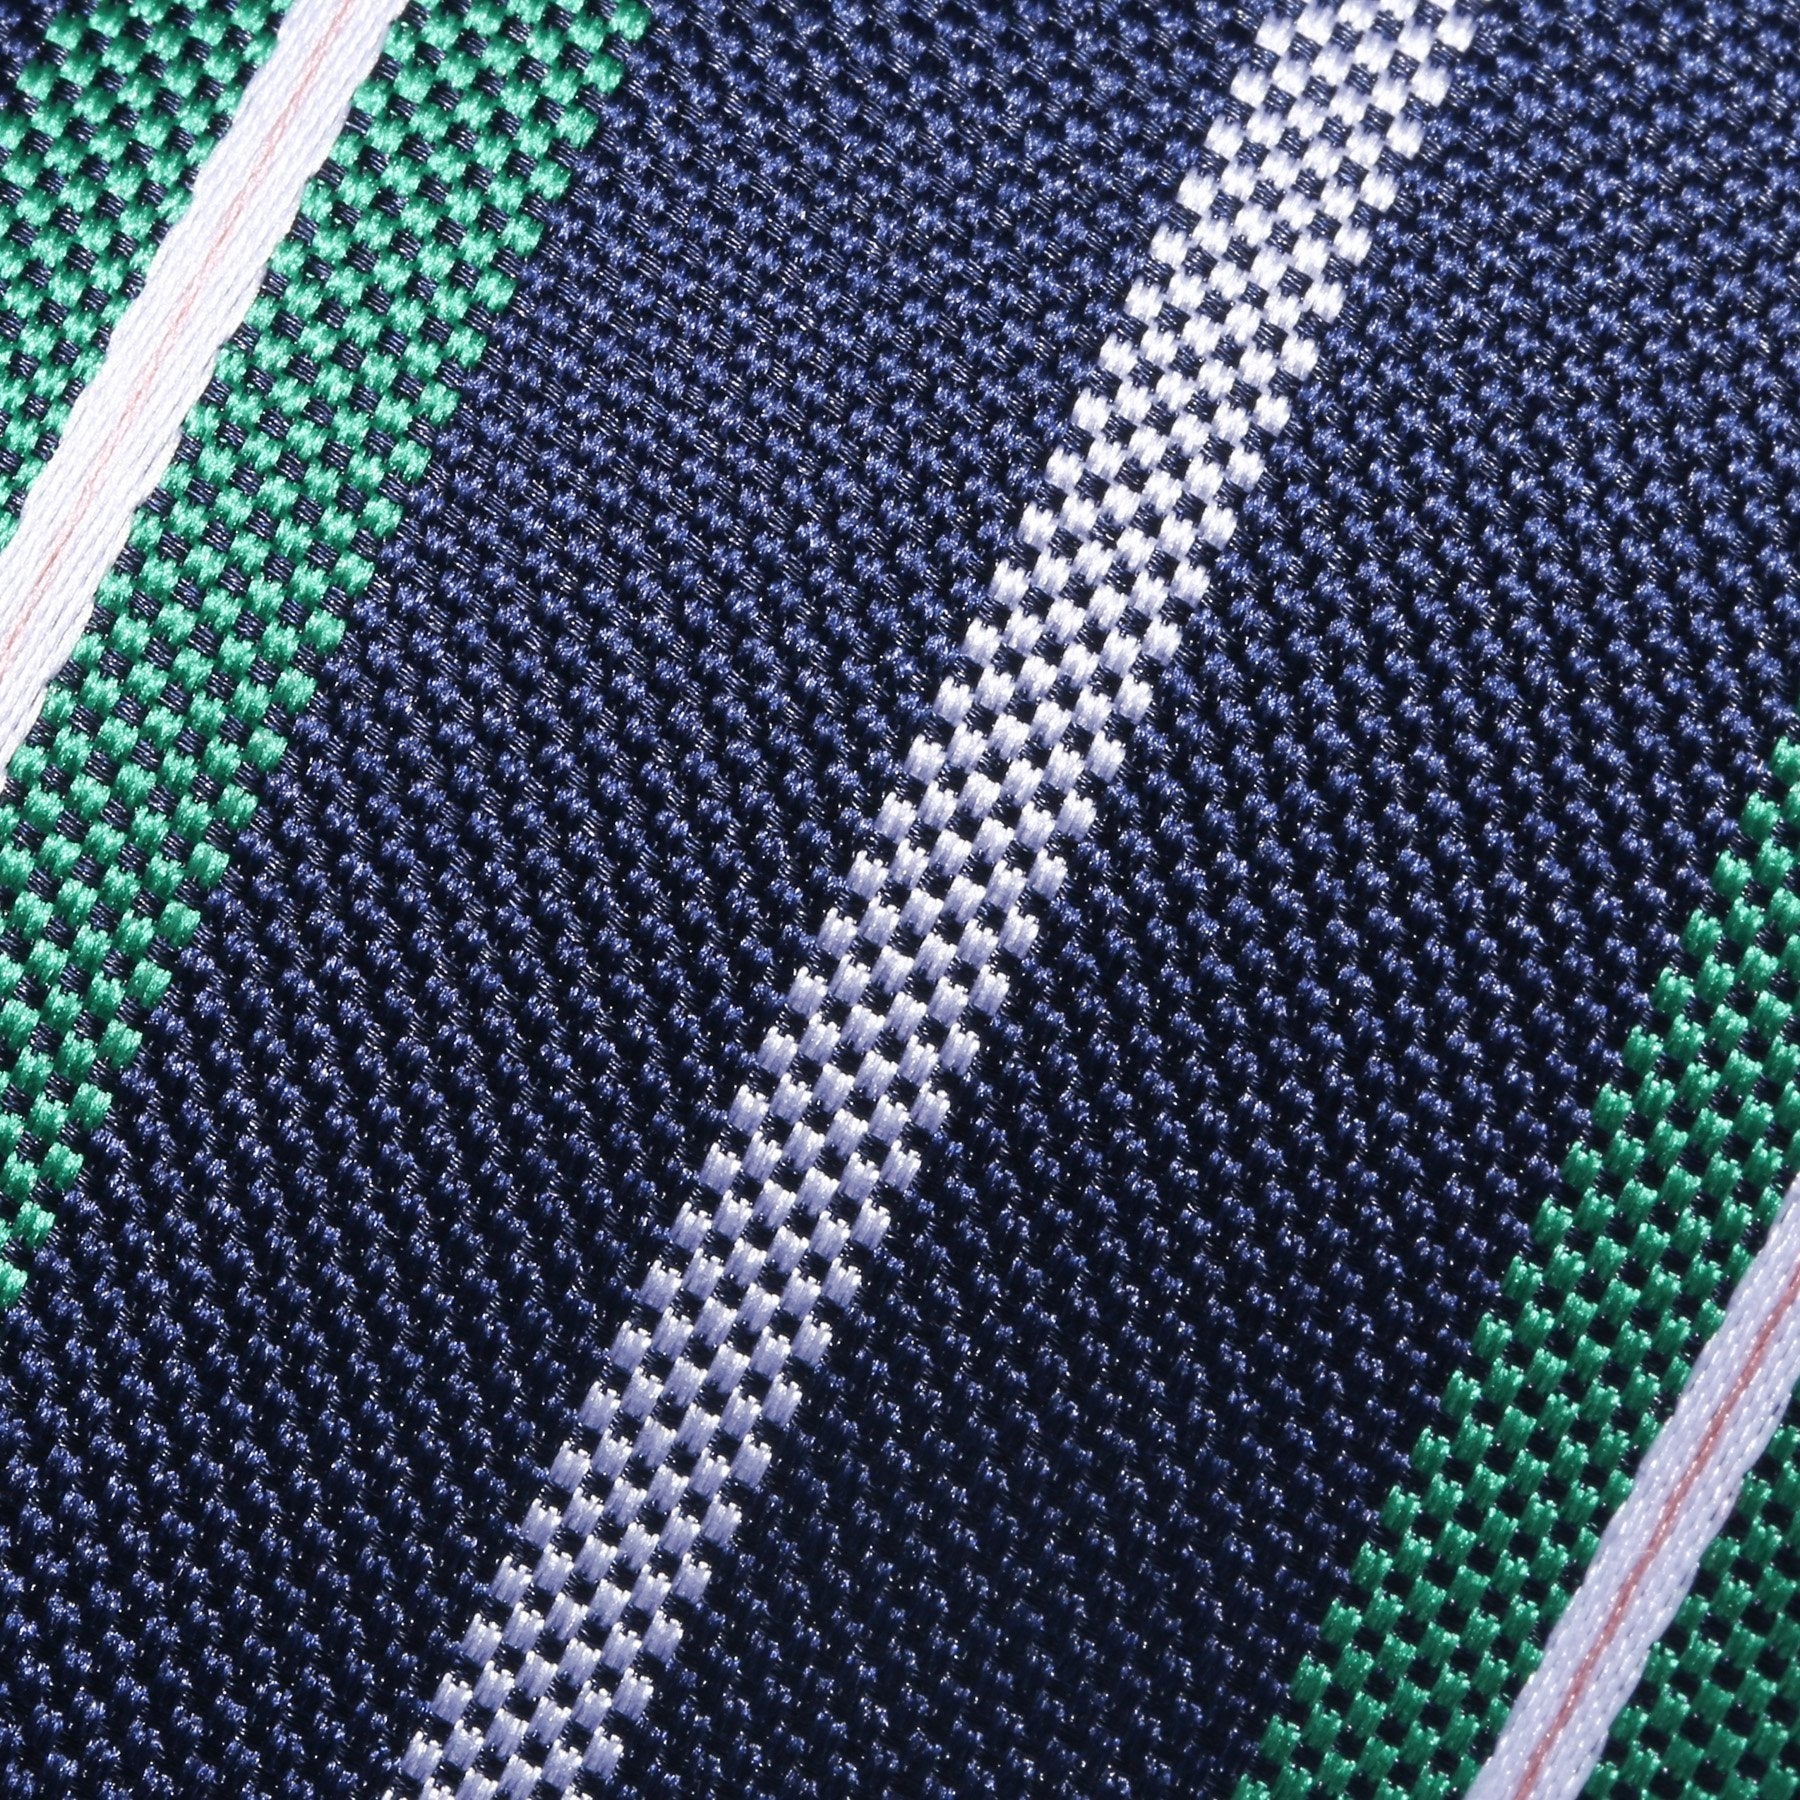 TS4162-01-Folkespeare-Navy-Emerald-And-White-Diagonal-Stripe-Slim-Tie-2